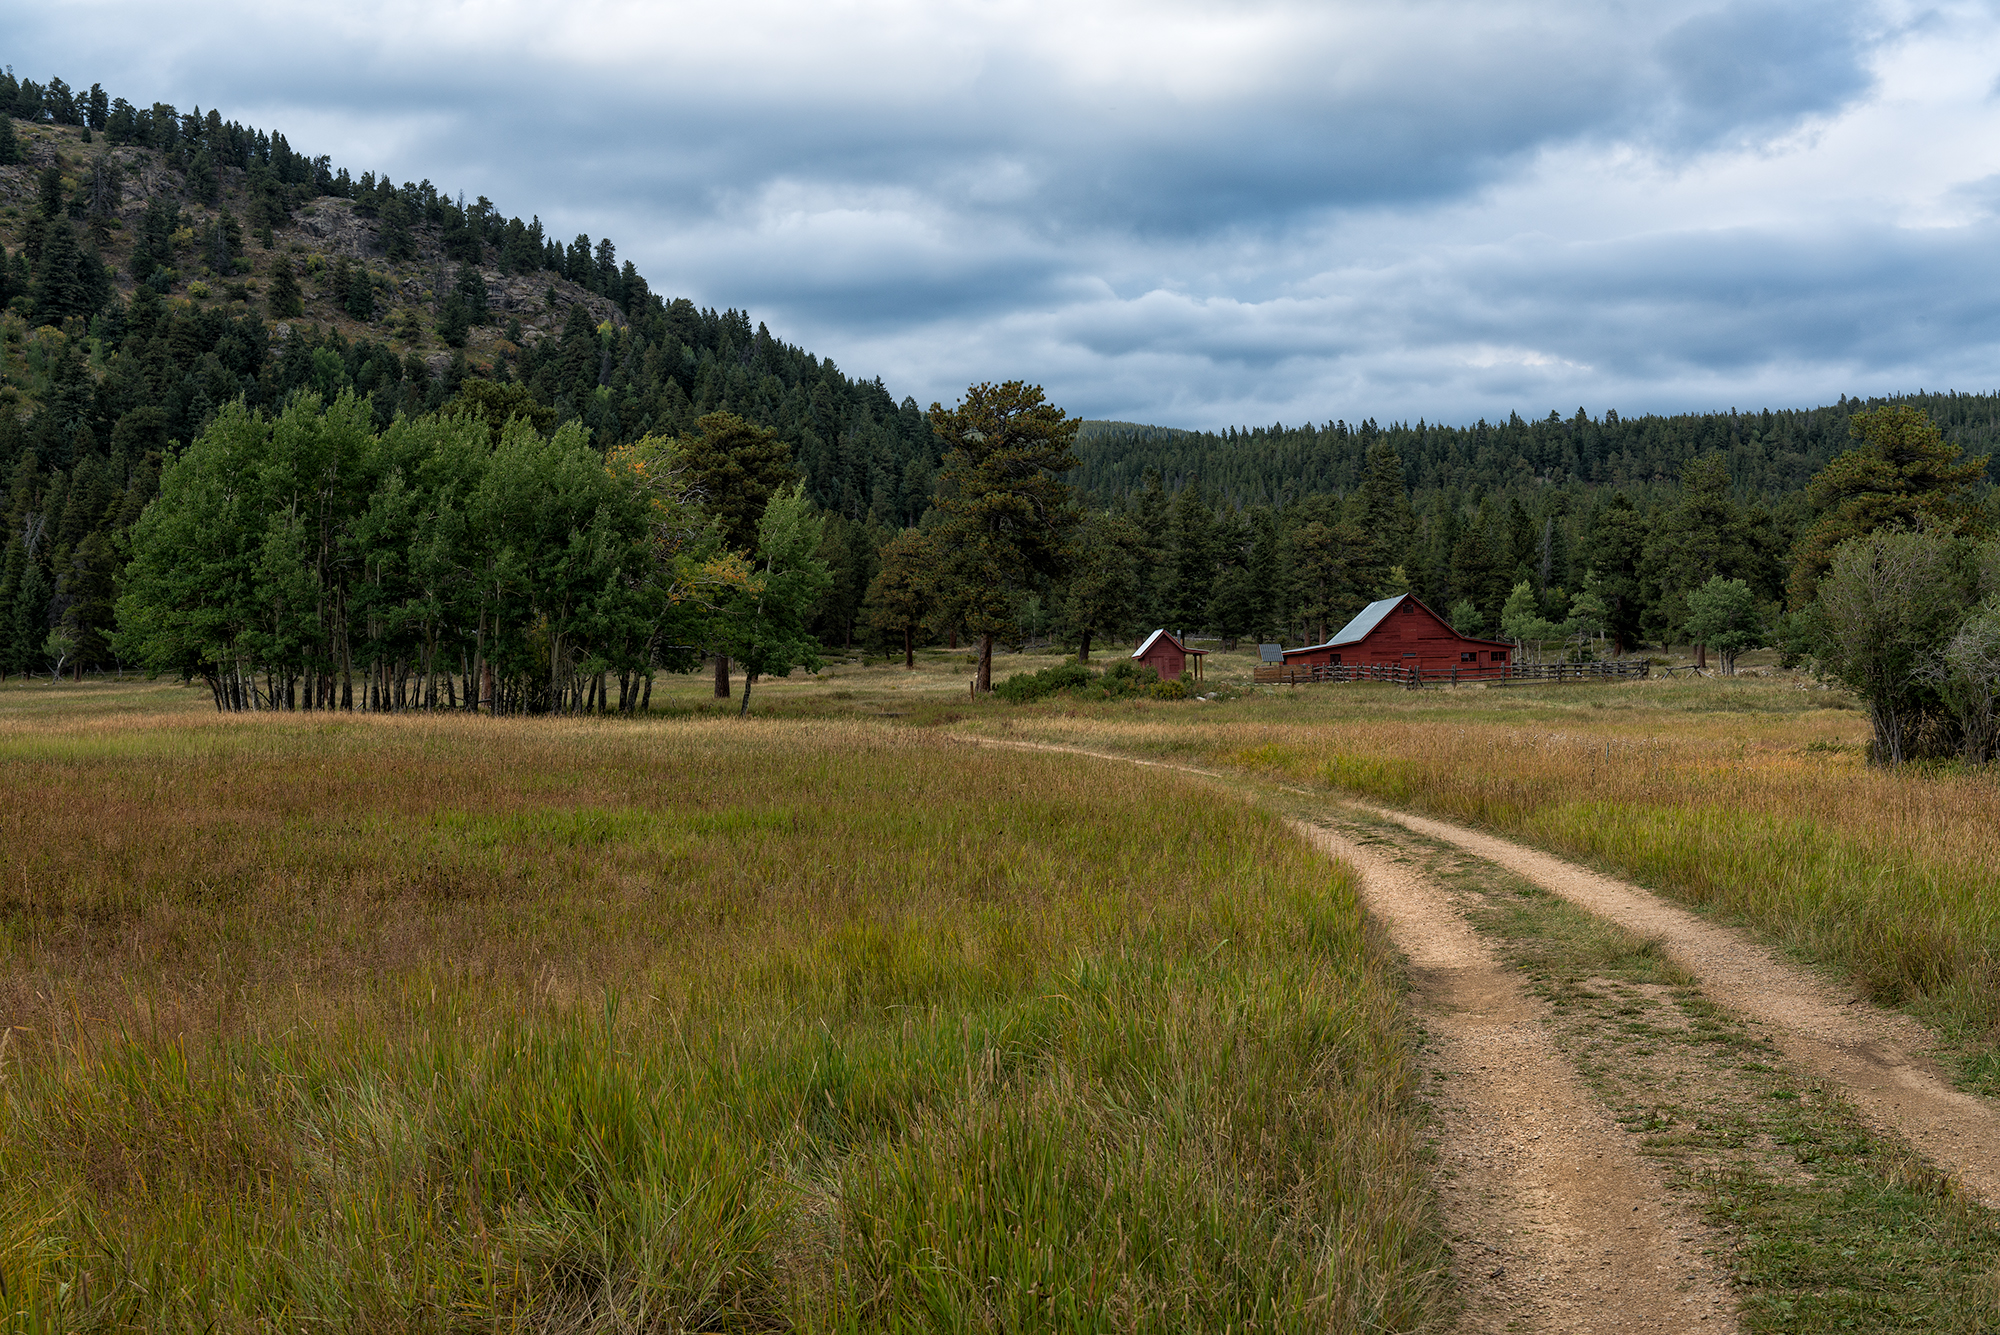 Autumn Approaches at the Red Cabin. Caribou Ranch Open Space, Colorado, 2016